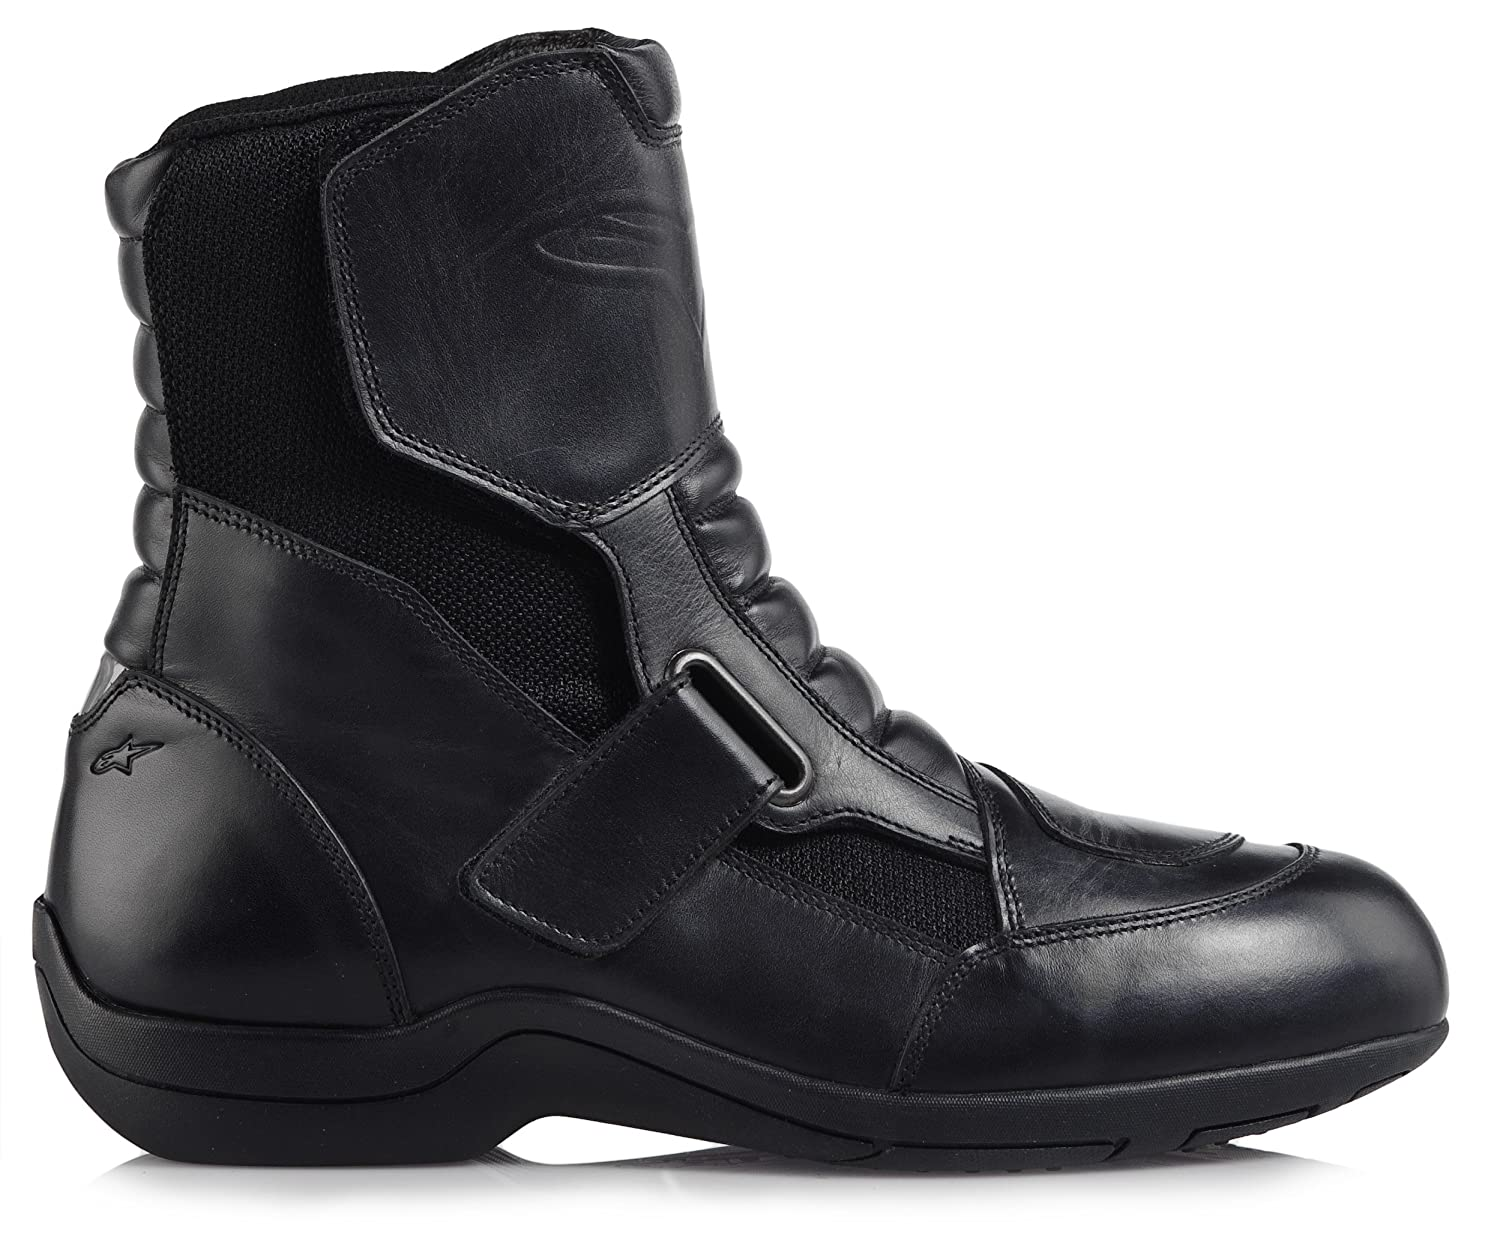 Black, EU Size 44 Alpinestars Ridge Waterproof Mens Street Motorcycle Boots